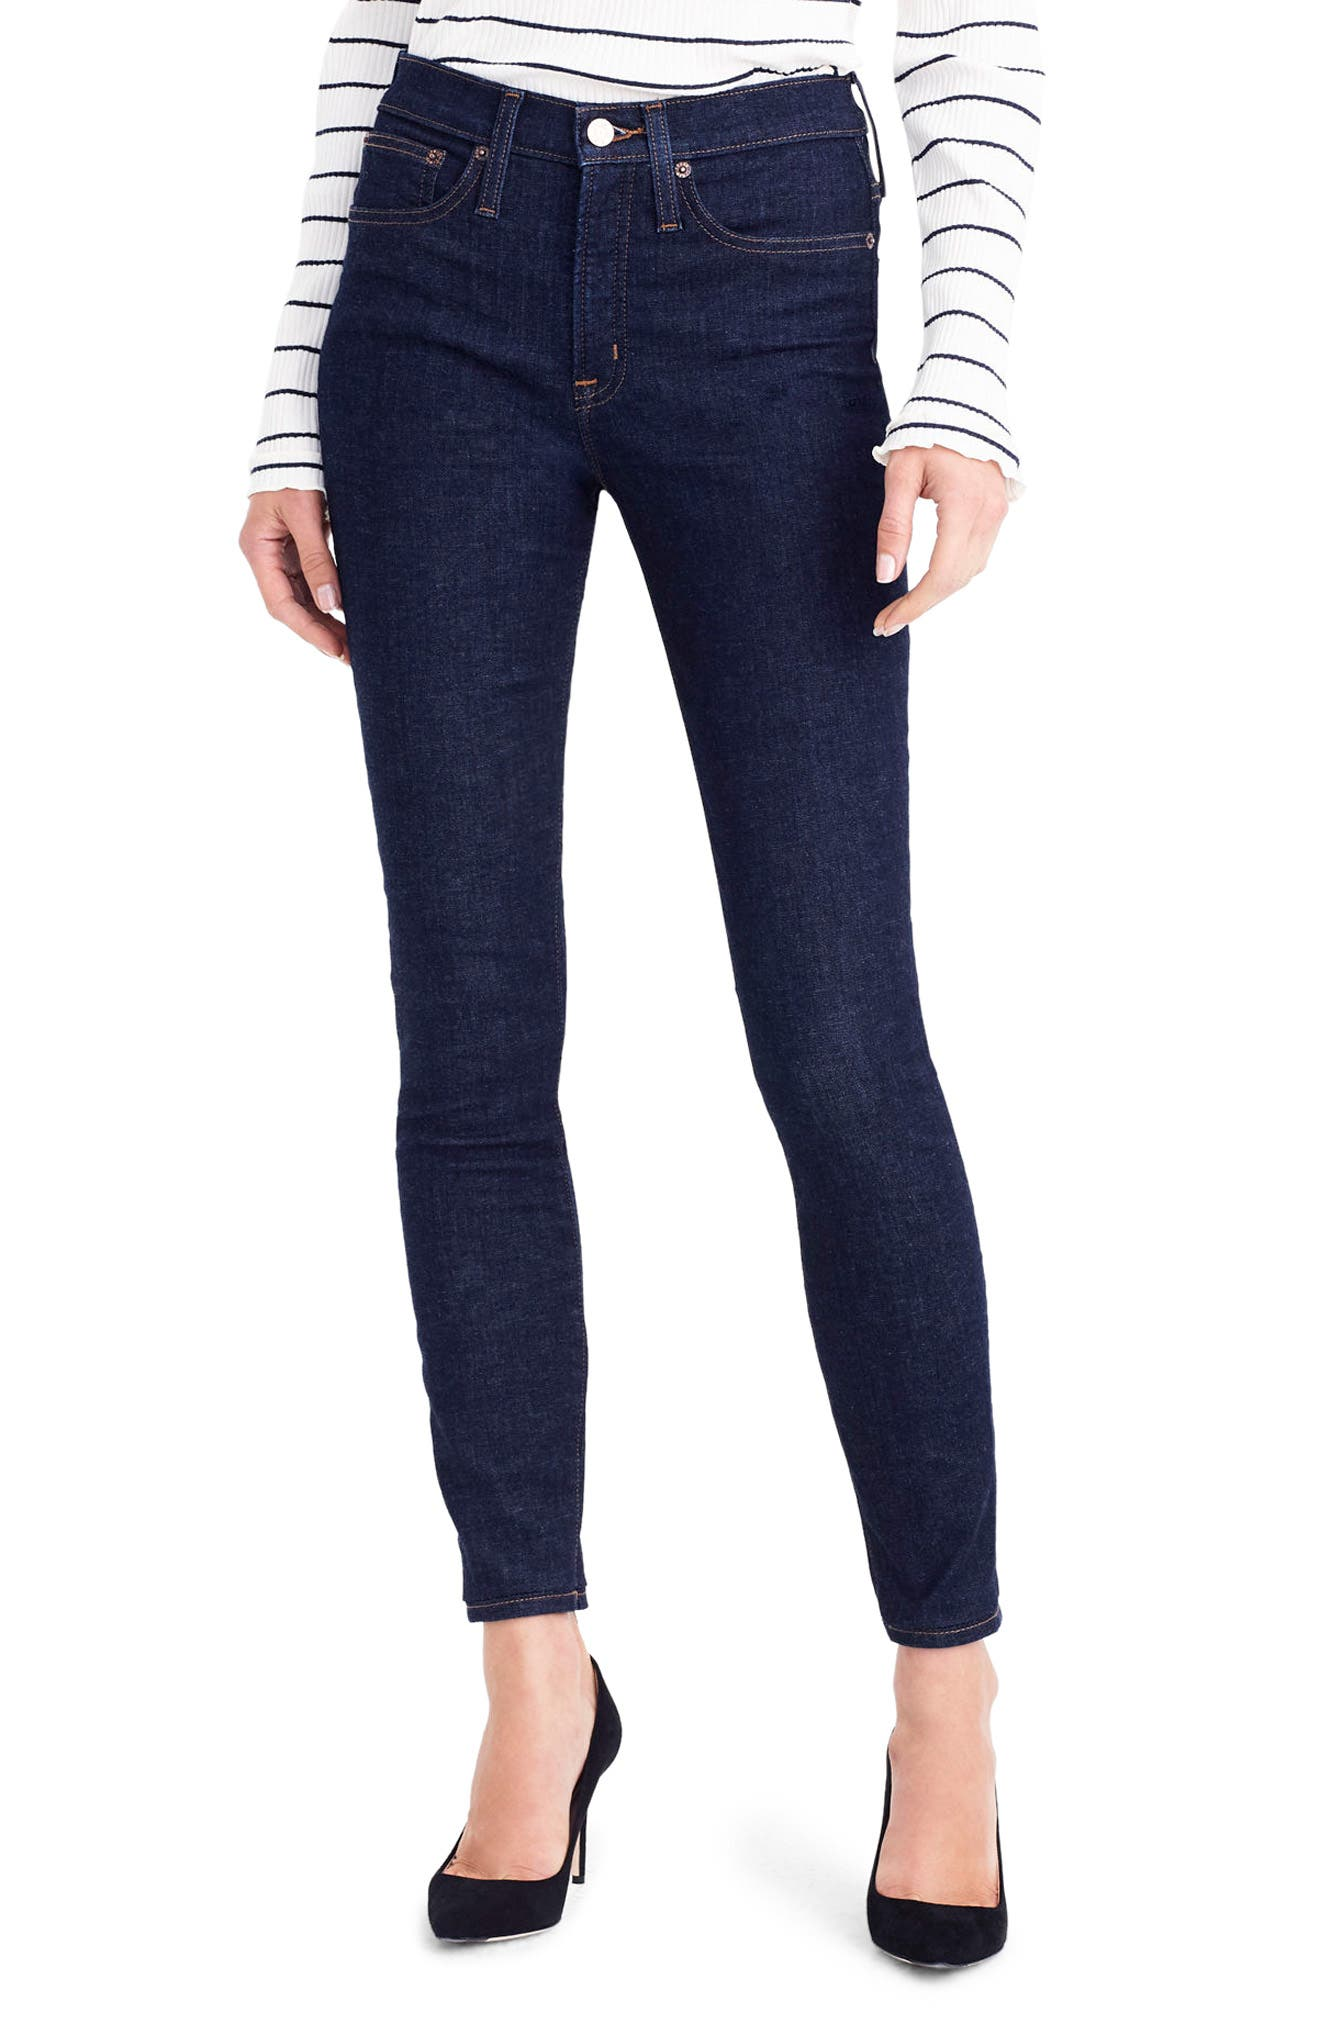 Toothpick High Rise Jeans,                             Main thumbnail 1, color,                             409